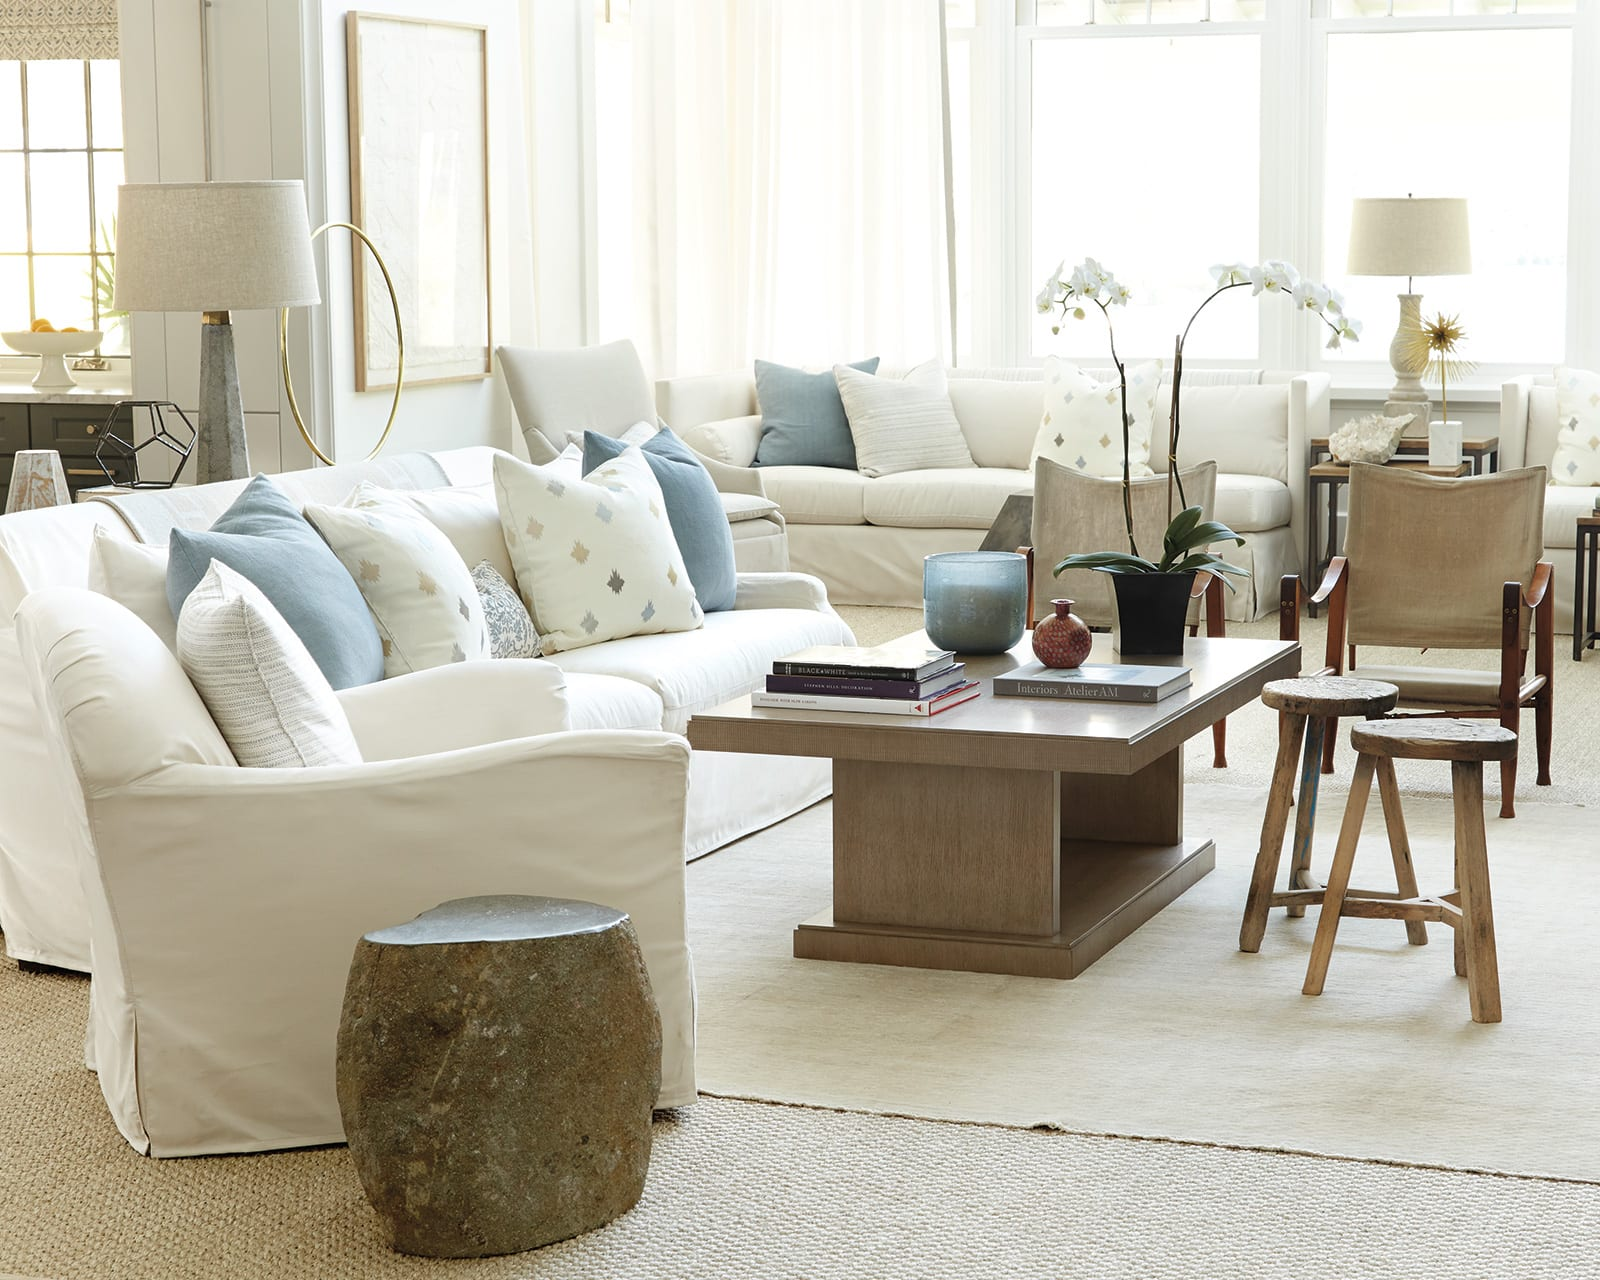 Types Of Sofa For Living Room 15 Ways To Layout Your Living Room How To Decorate